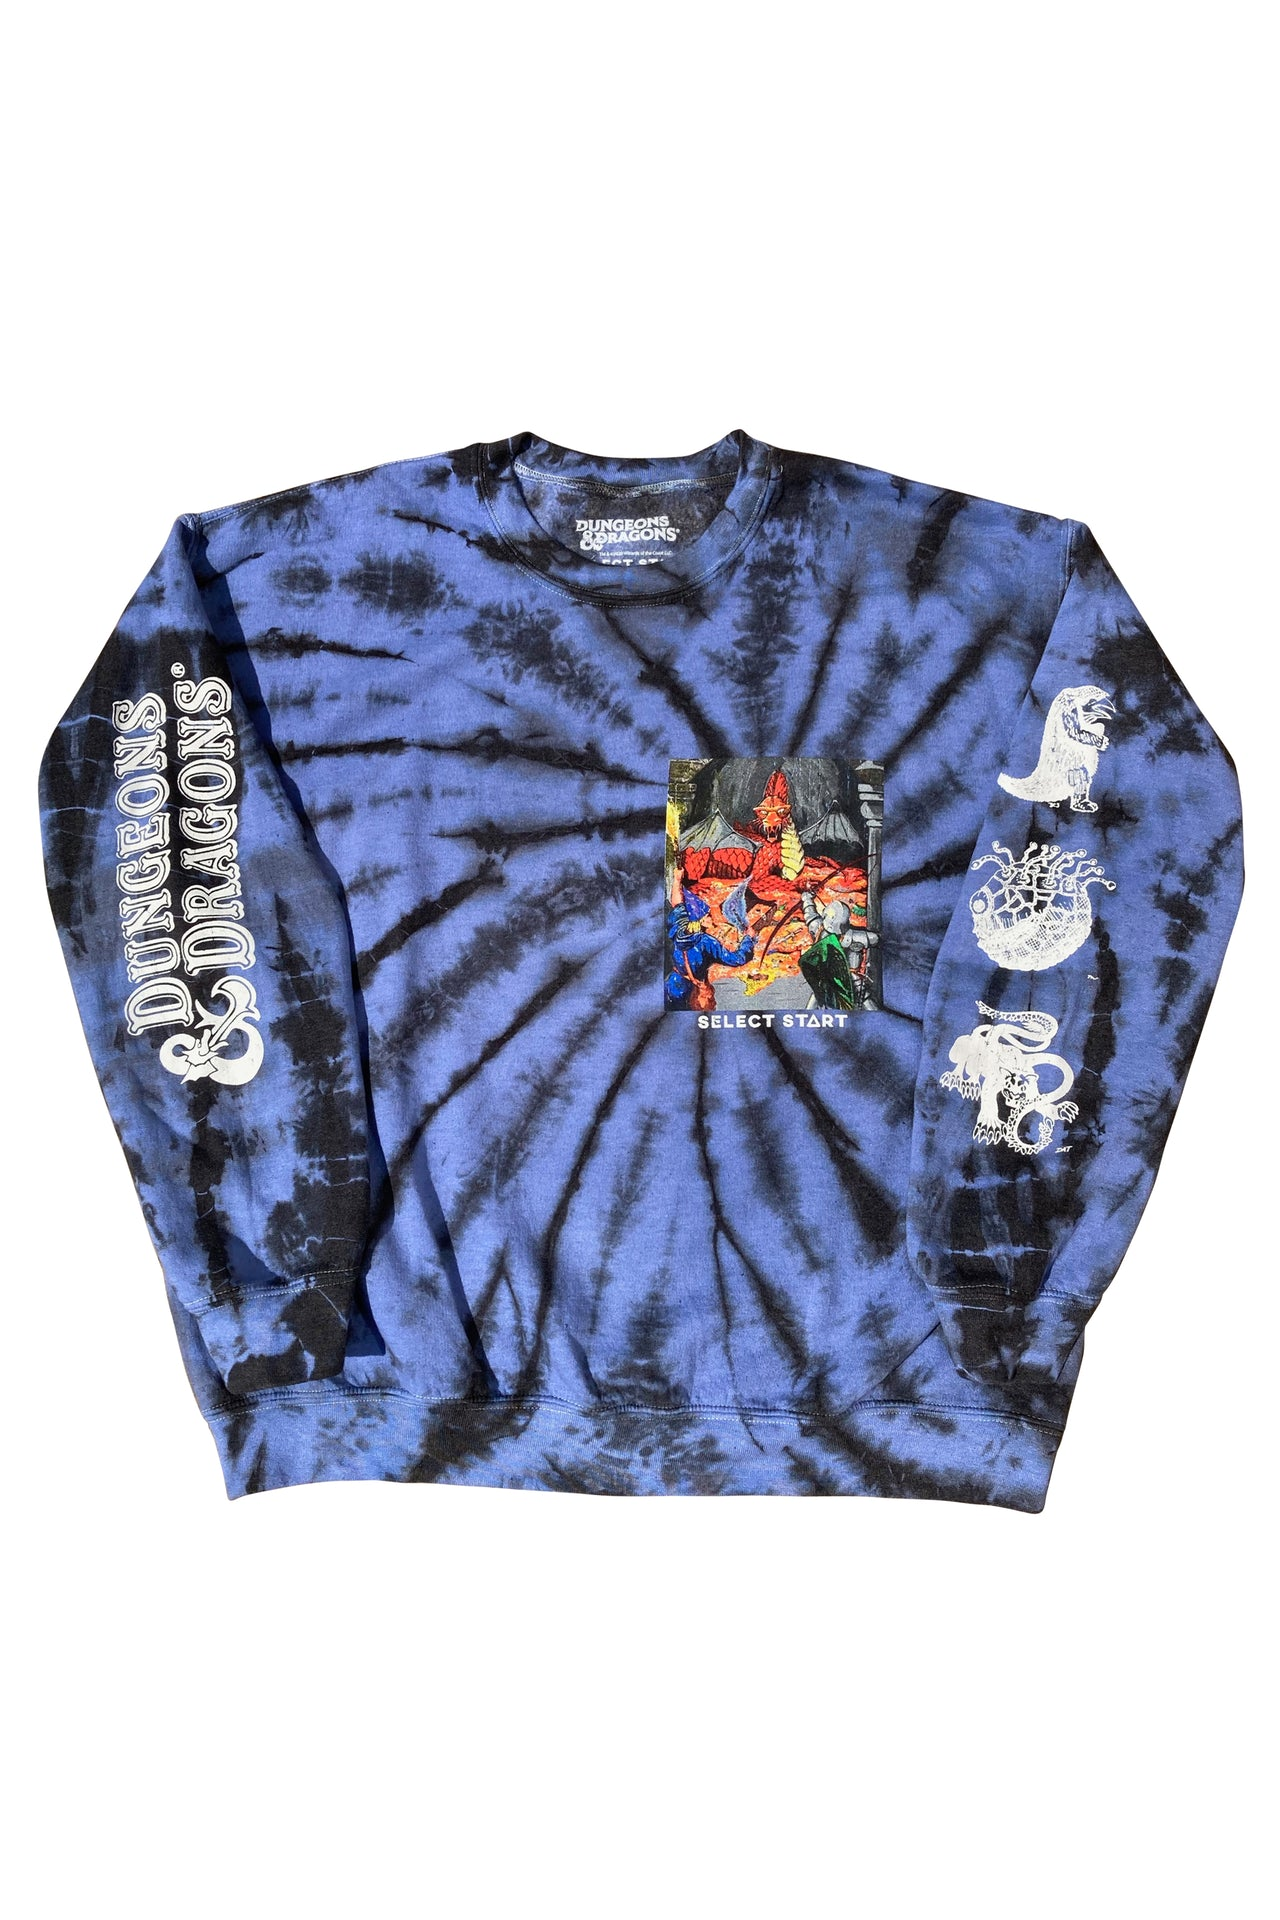 Dungeons & Dragons Tie Dye Crewneck - Select Start